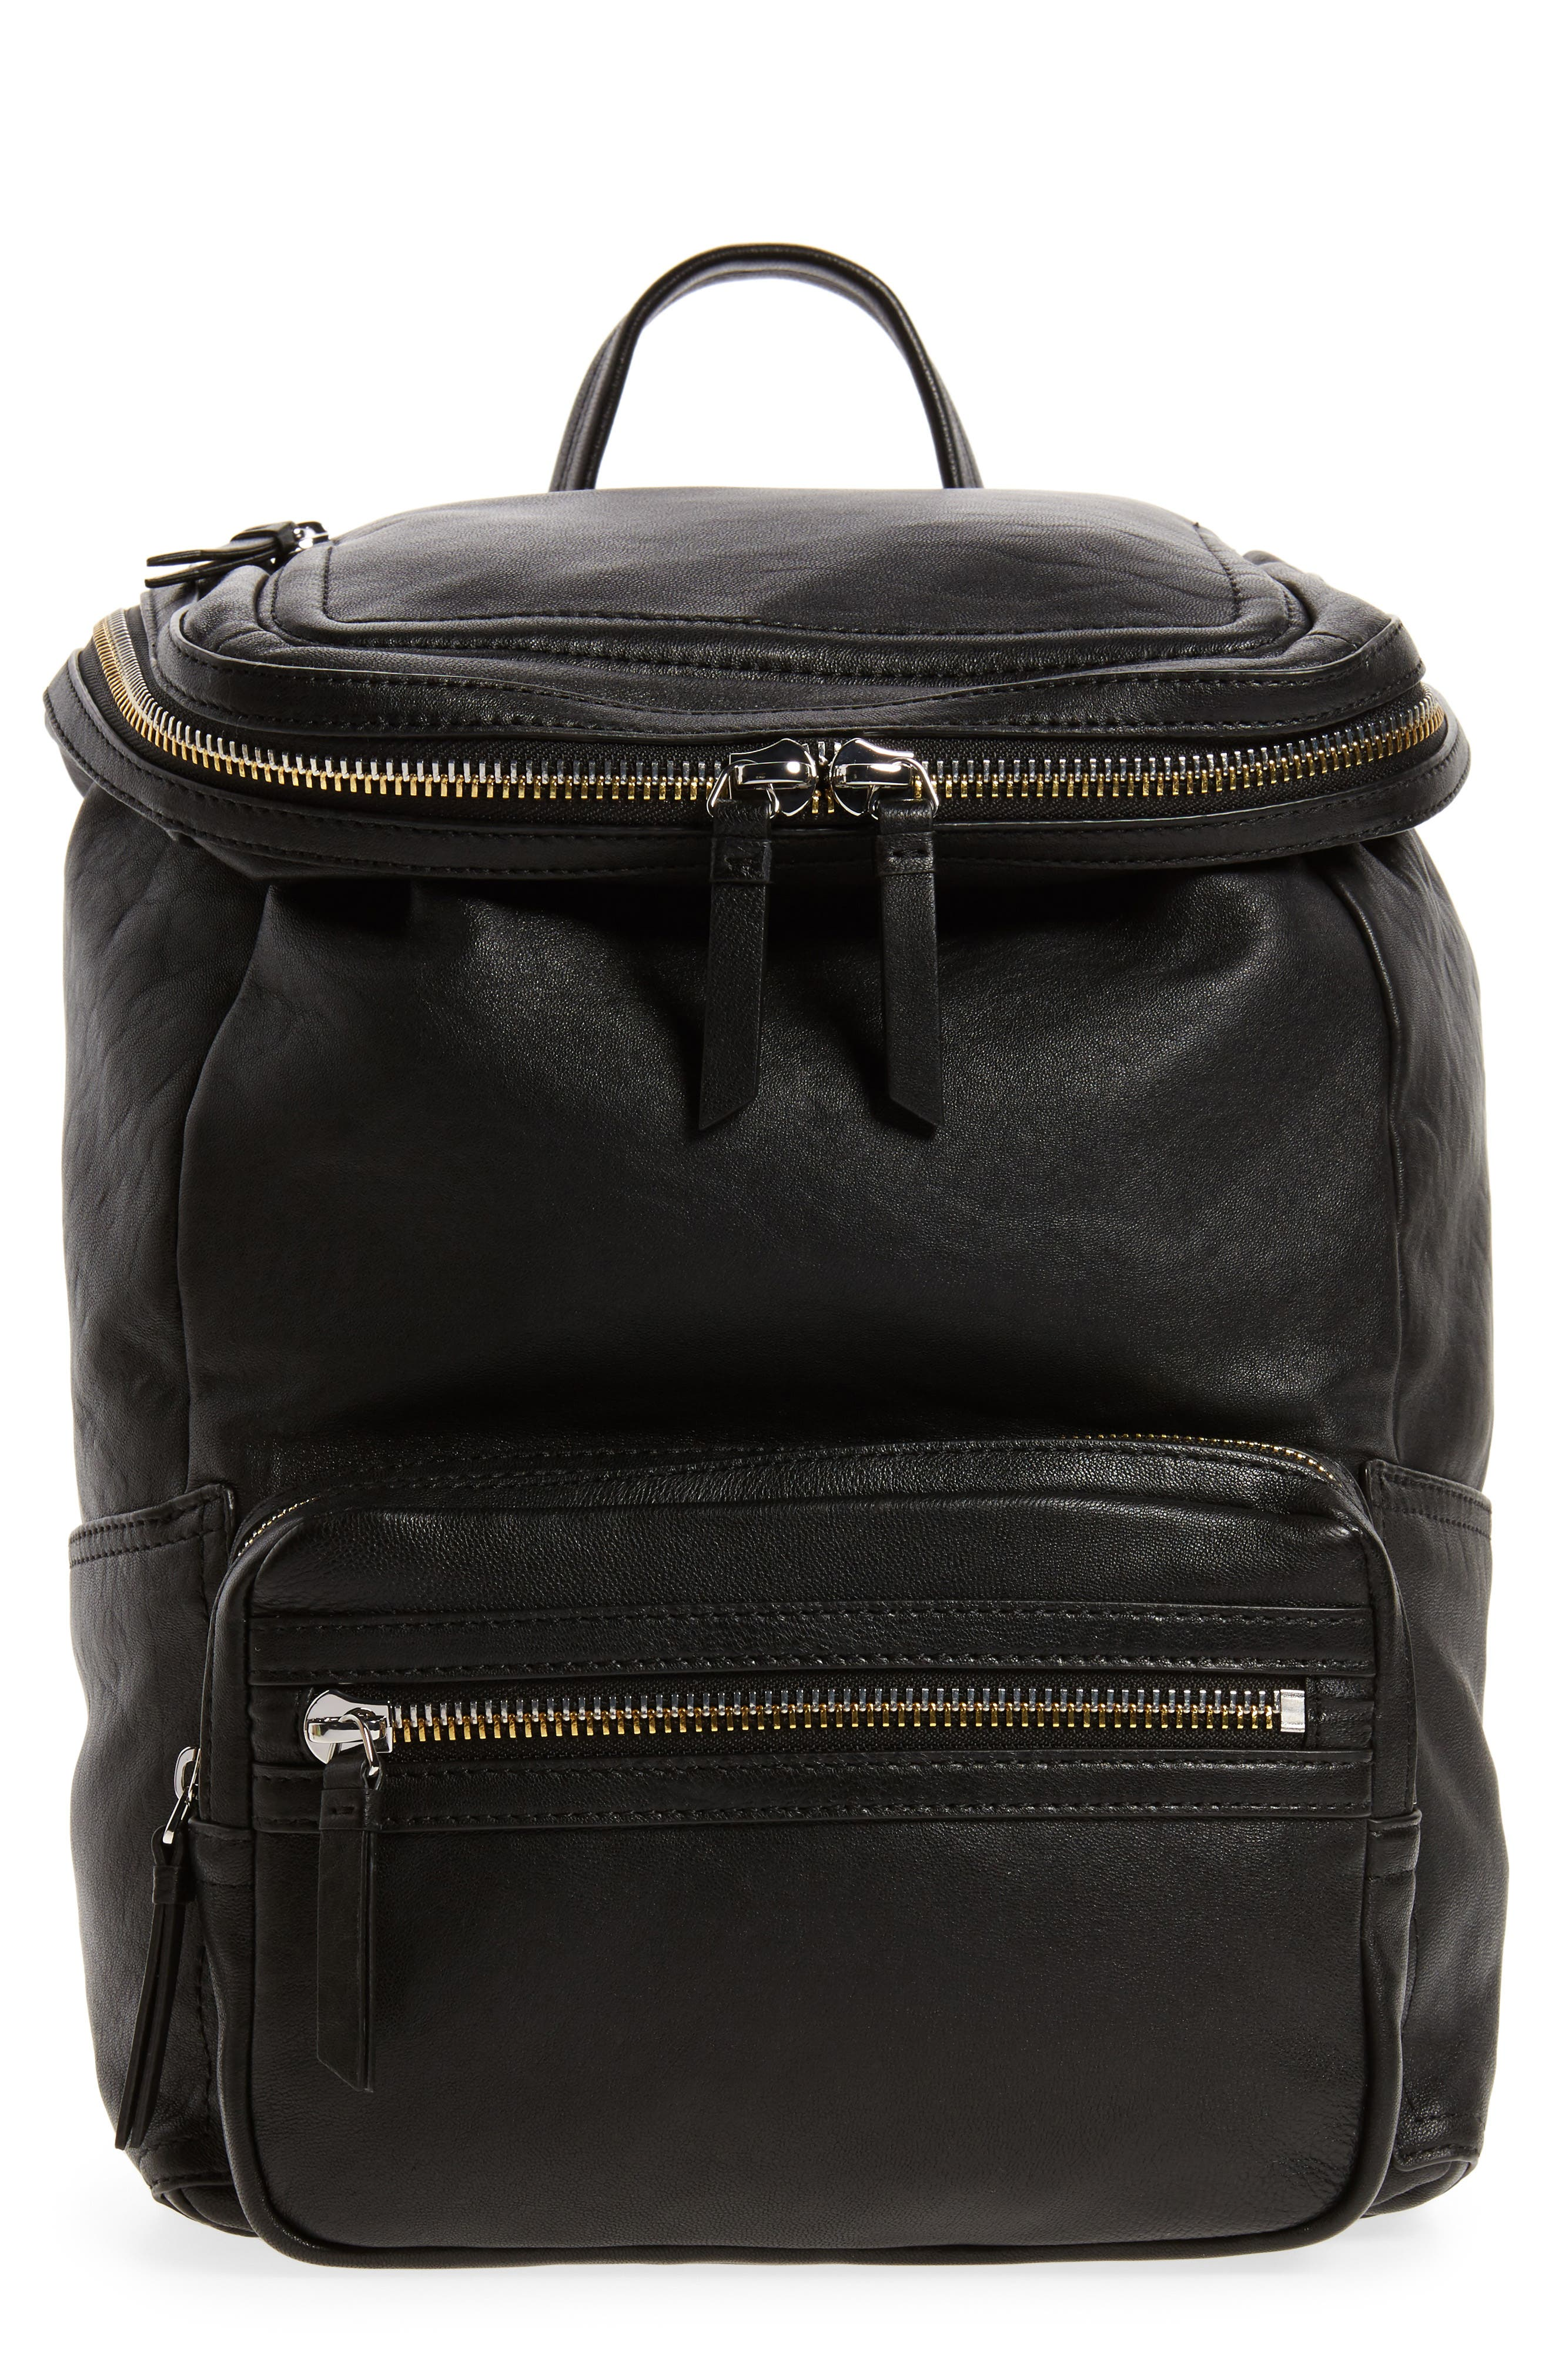 Patch Convertible Leather Backpack,                         Main,                         color, 002